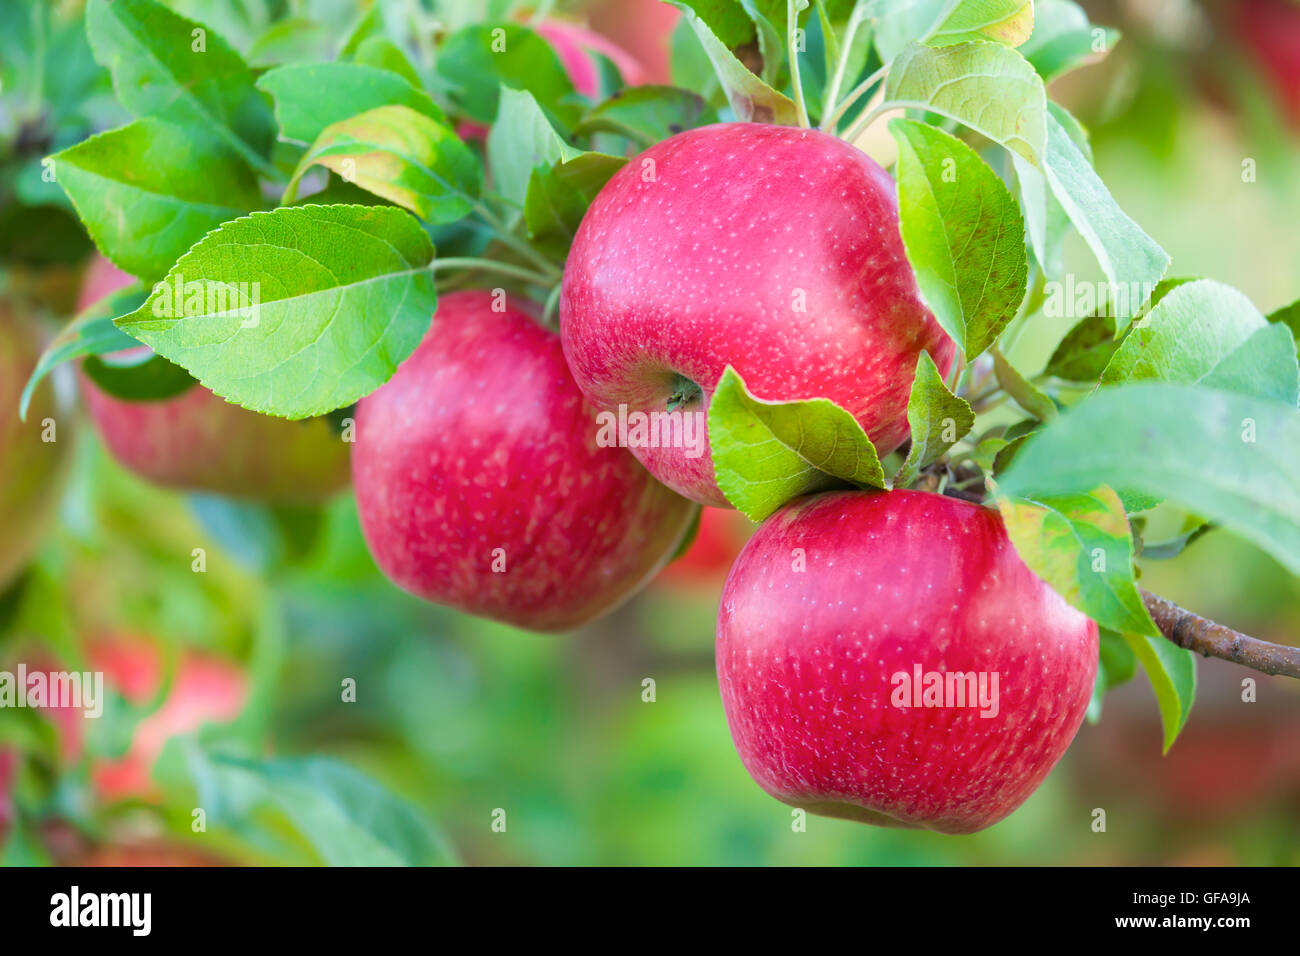 Honey crisp apples in the orchard. - Stock Image